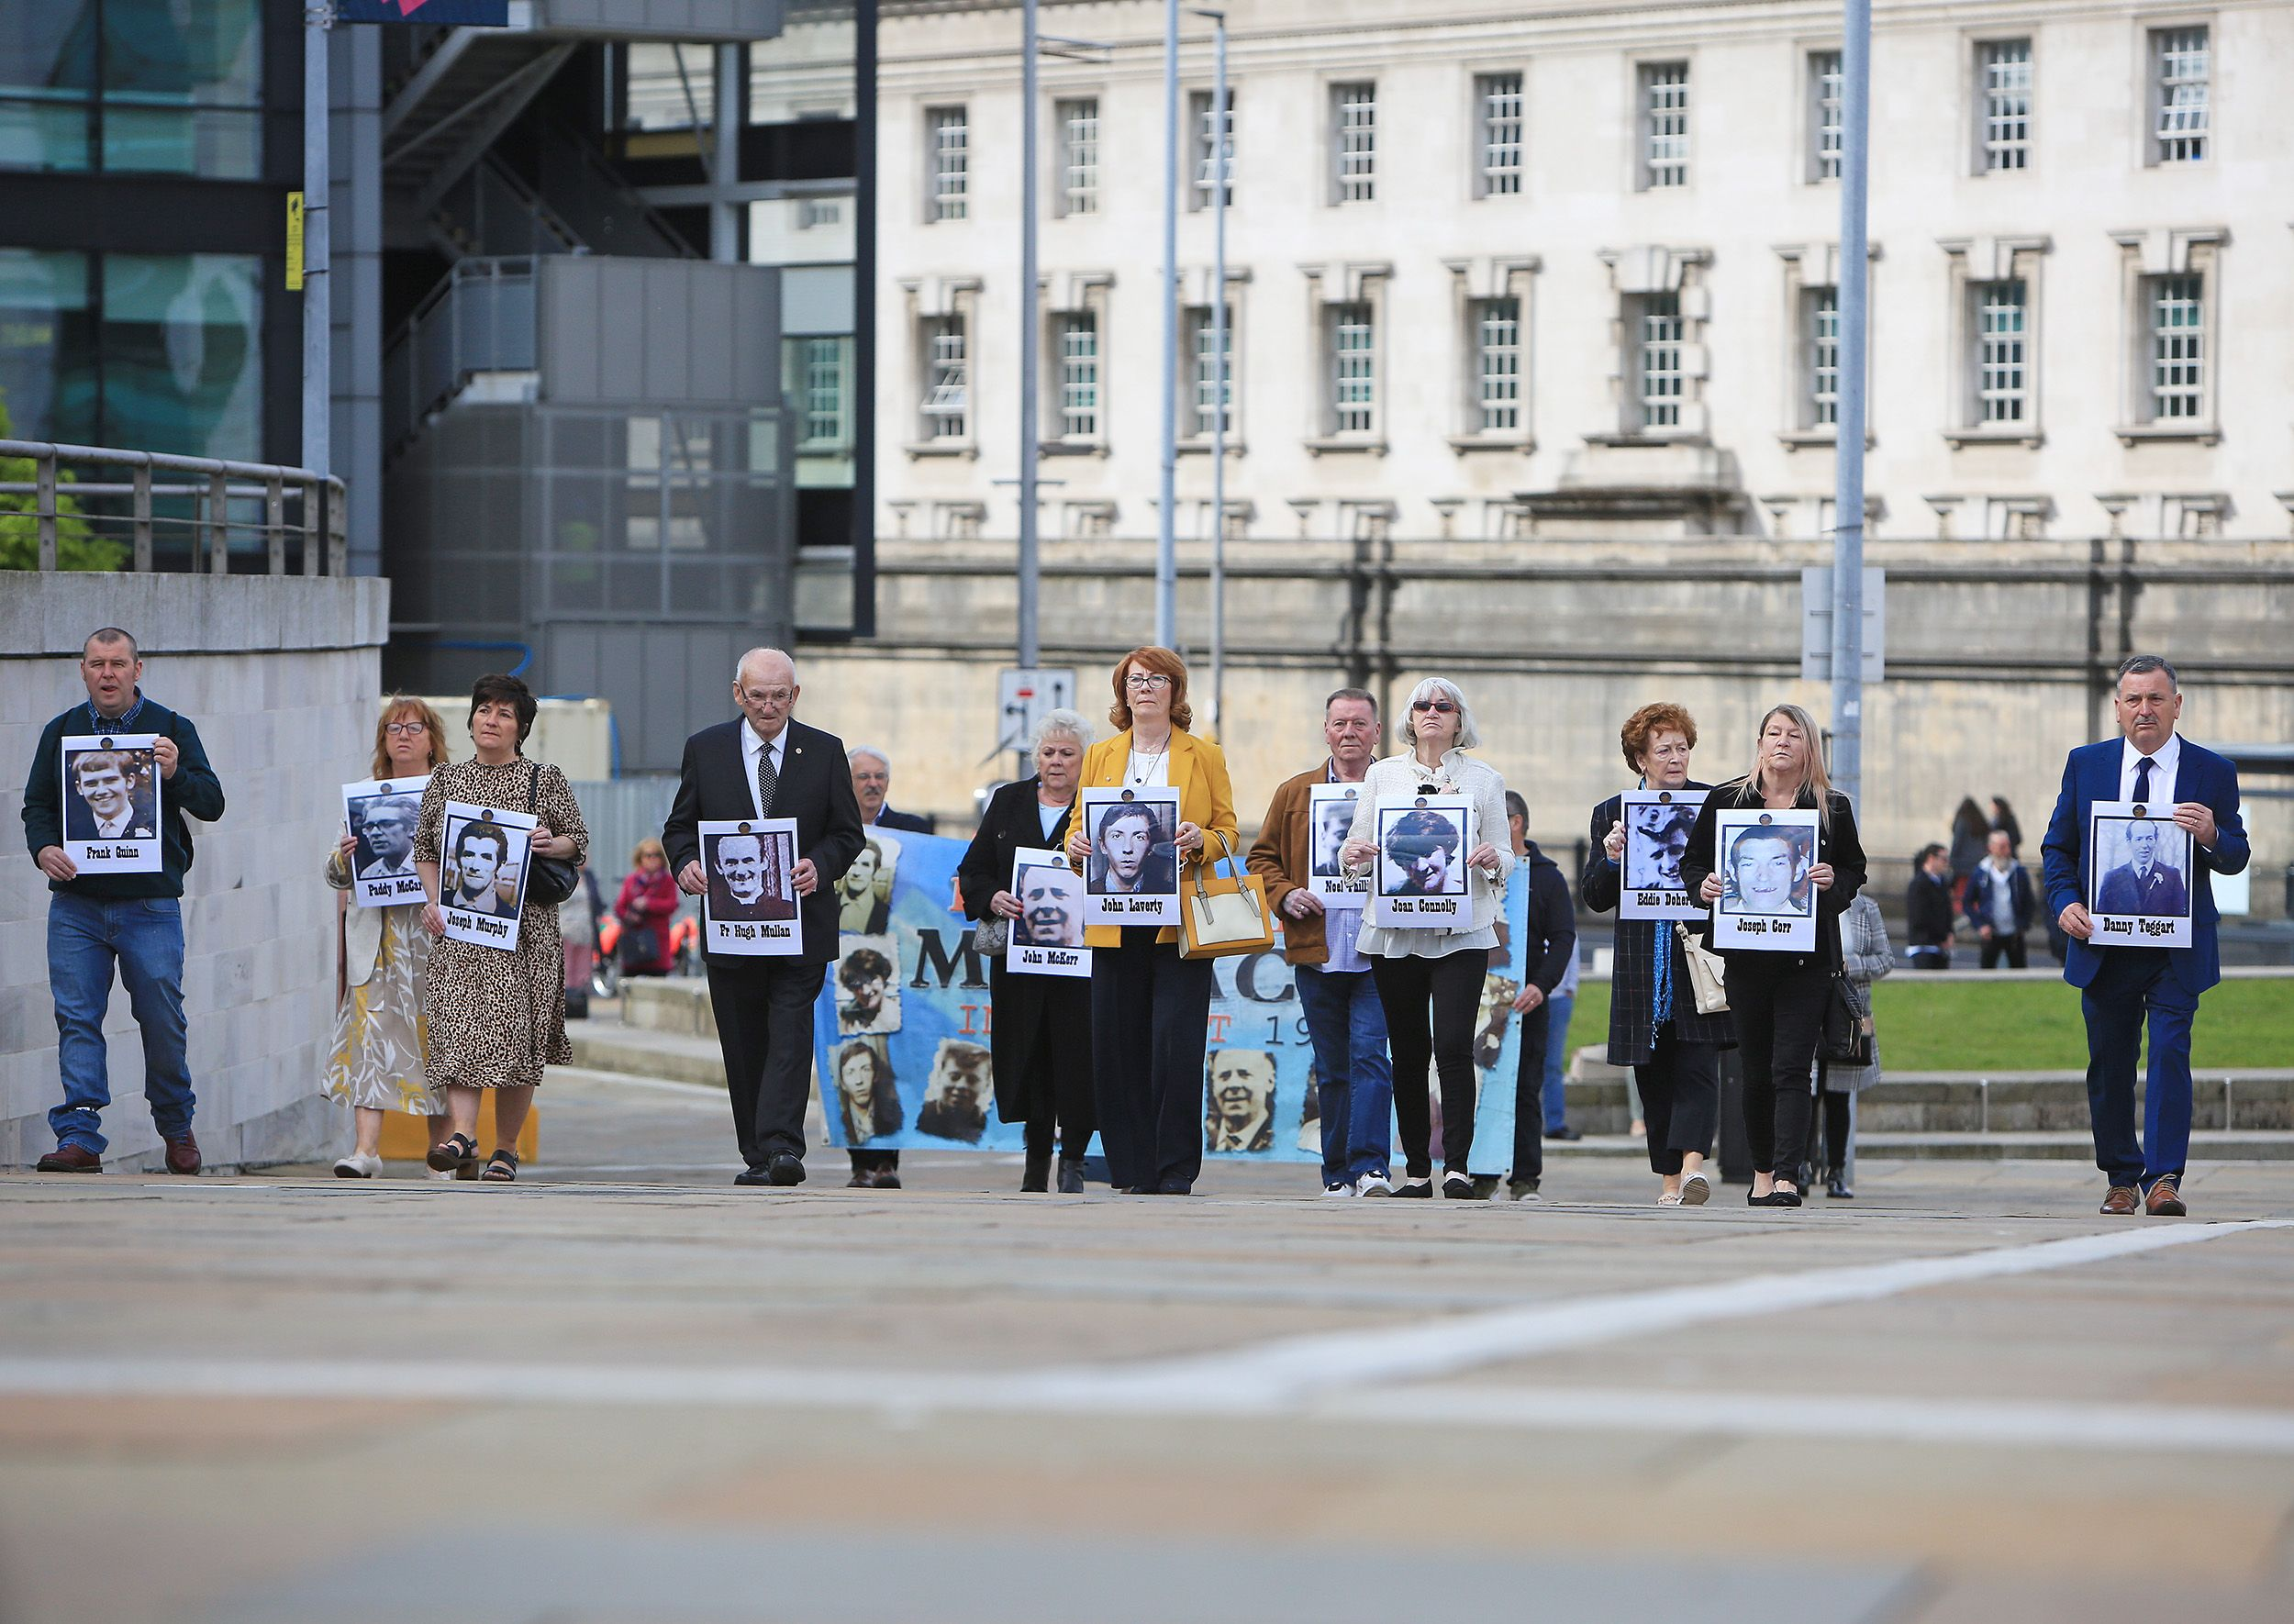 JUSTICE SEARCH: Relatives of victims of the Ballymurphy Massacre gathered to remember their loved ones before heading into the courts to hear the Coroner\'s verdict.